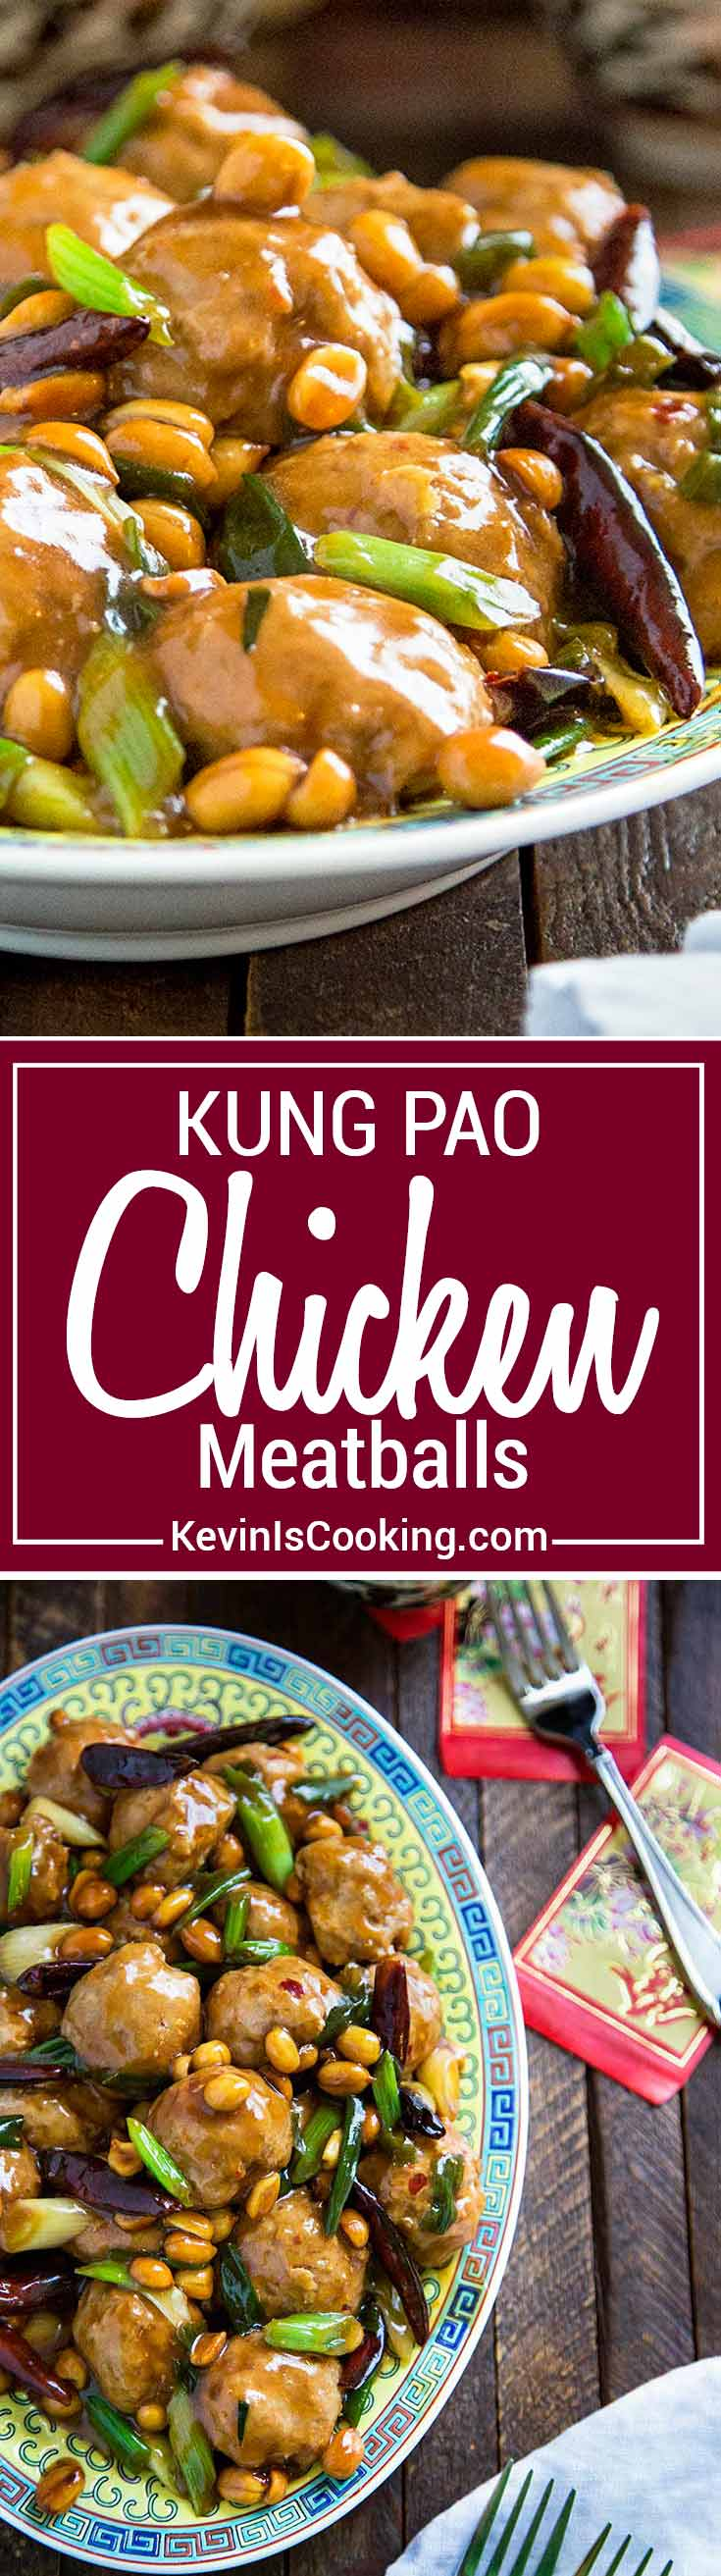 These Kung Pao Chicken Meatballs are made with a bit of peanut butter and chili paste in the chicken mixture and get baked and coated in an authentic sauce.